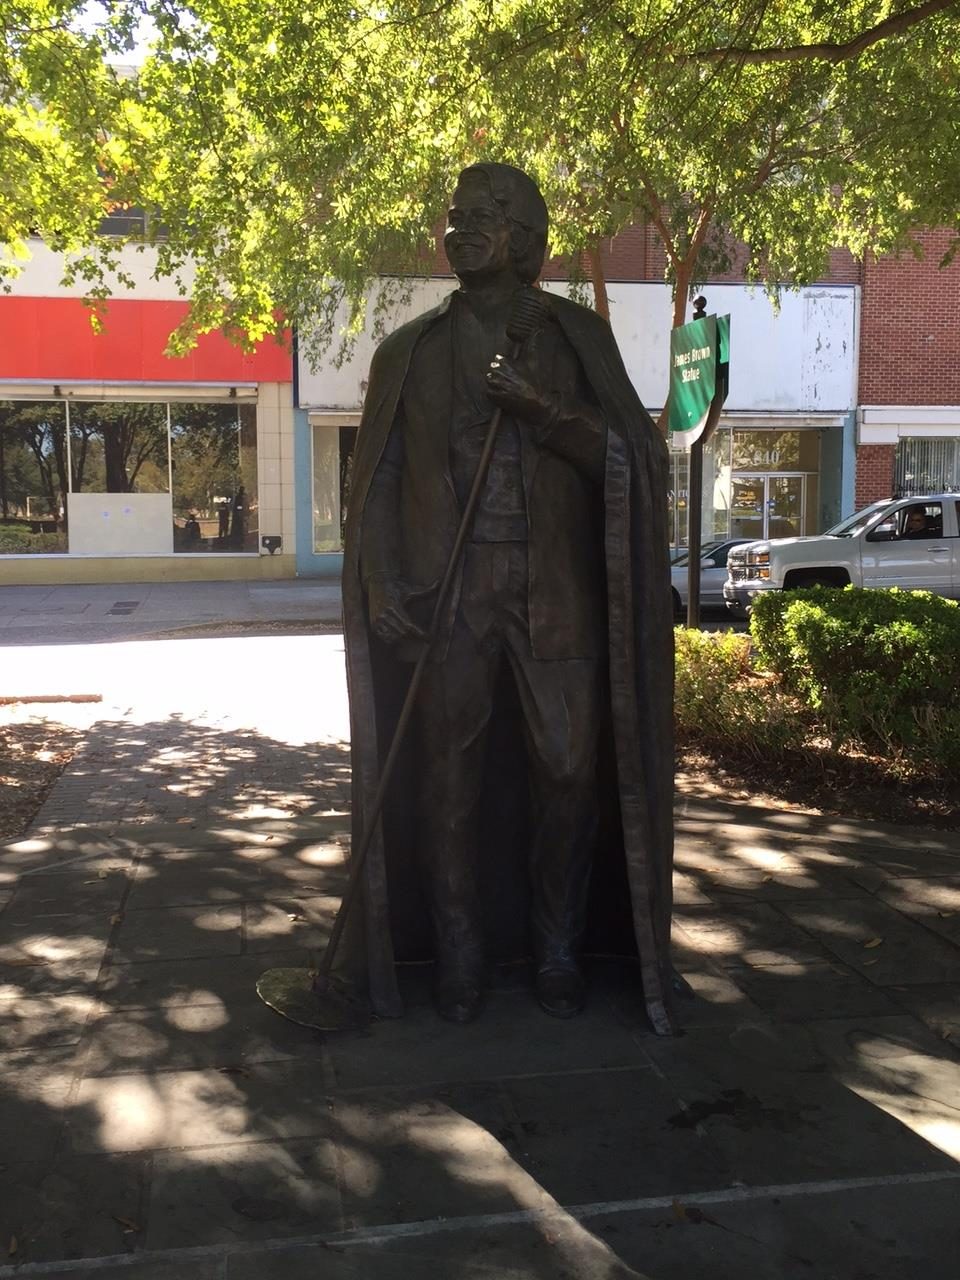 Augusta is home to the Godfather of Soul, James Brown.  His statue sits proudly in one of the landscaped medians in downtown Augusta, at the intersection of the rode named for him.